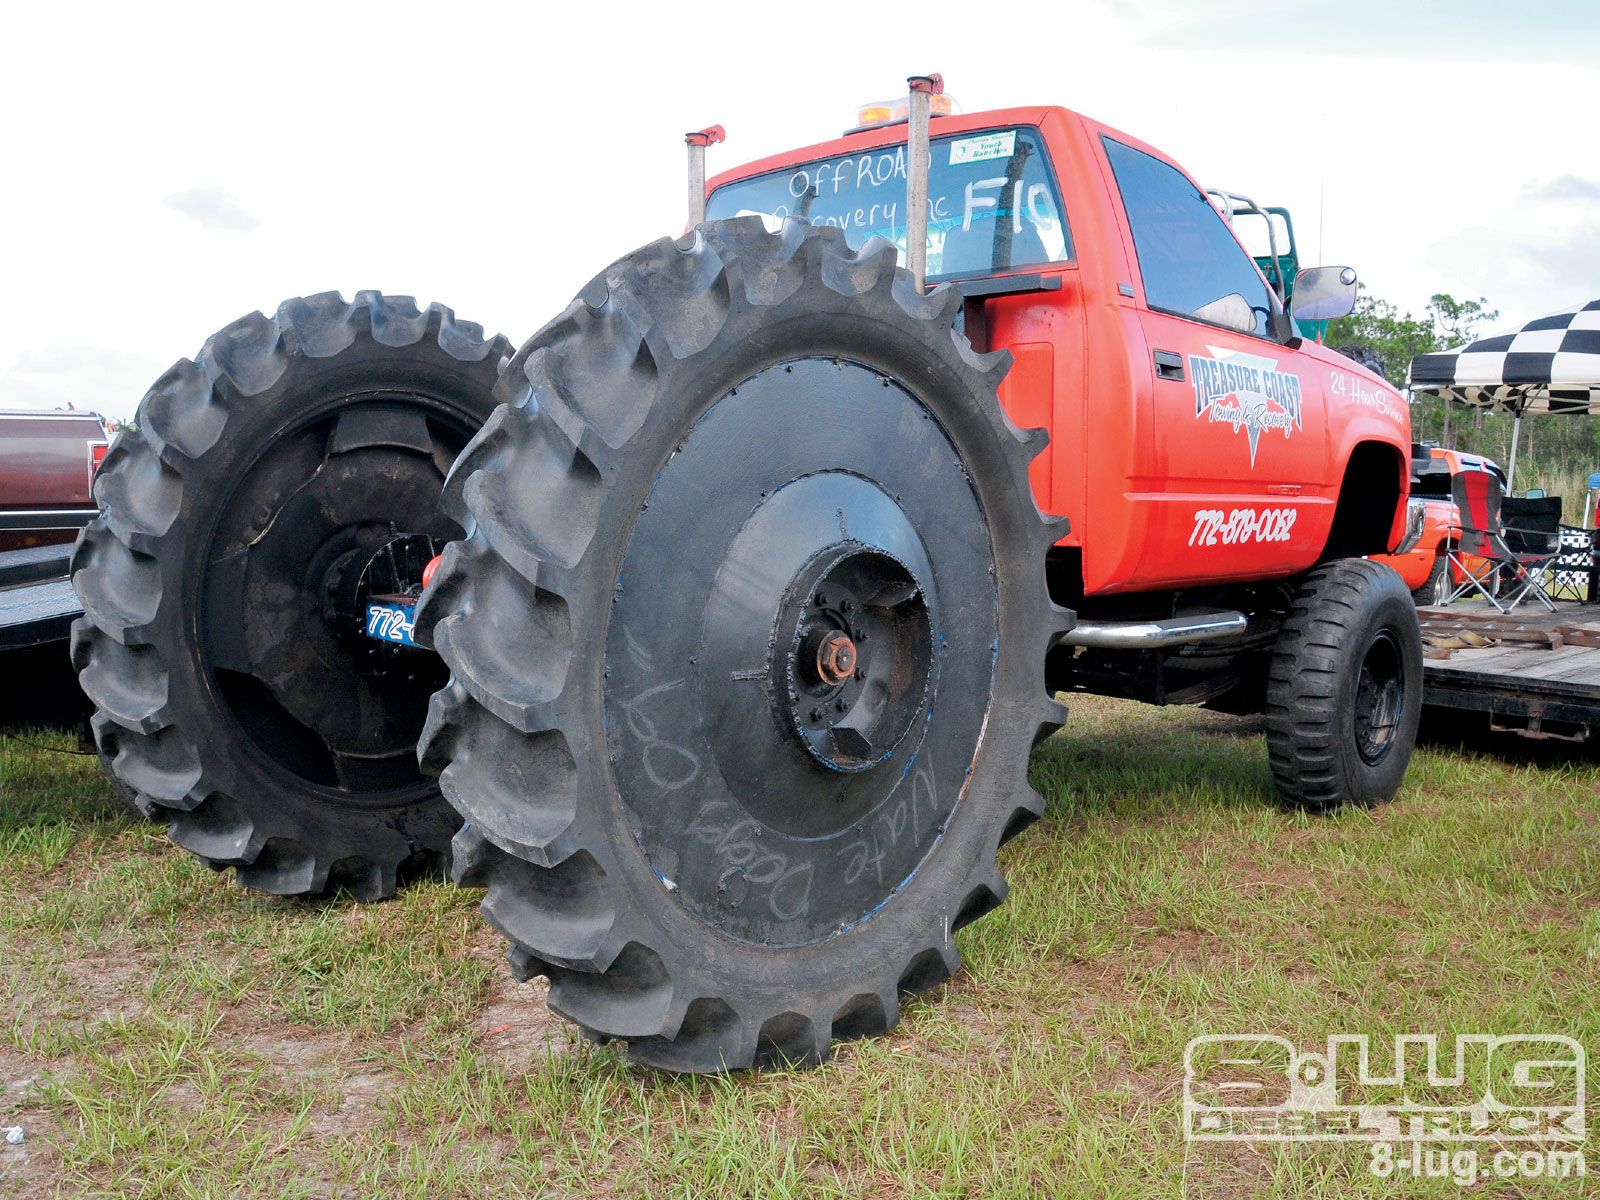 Mud racing florida off road recovery vehicle chevrolet